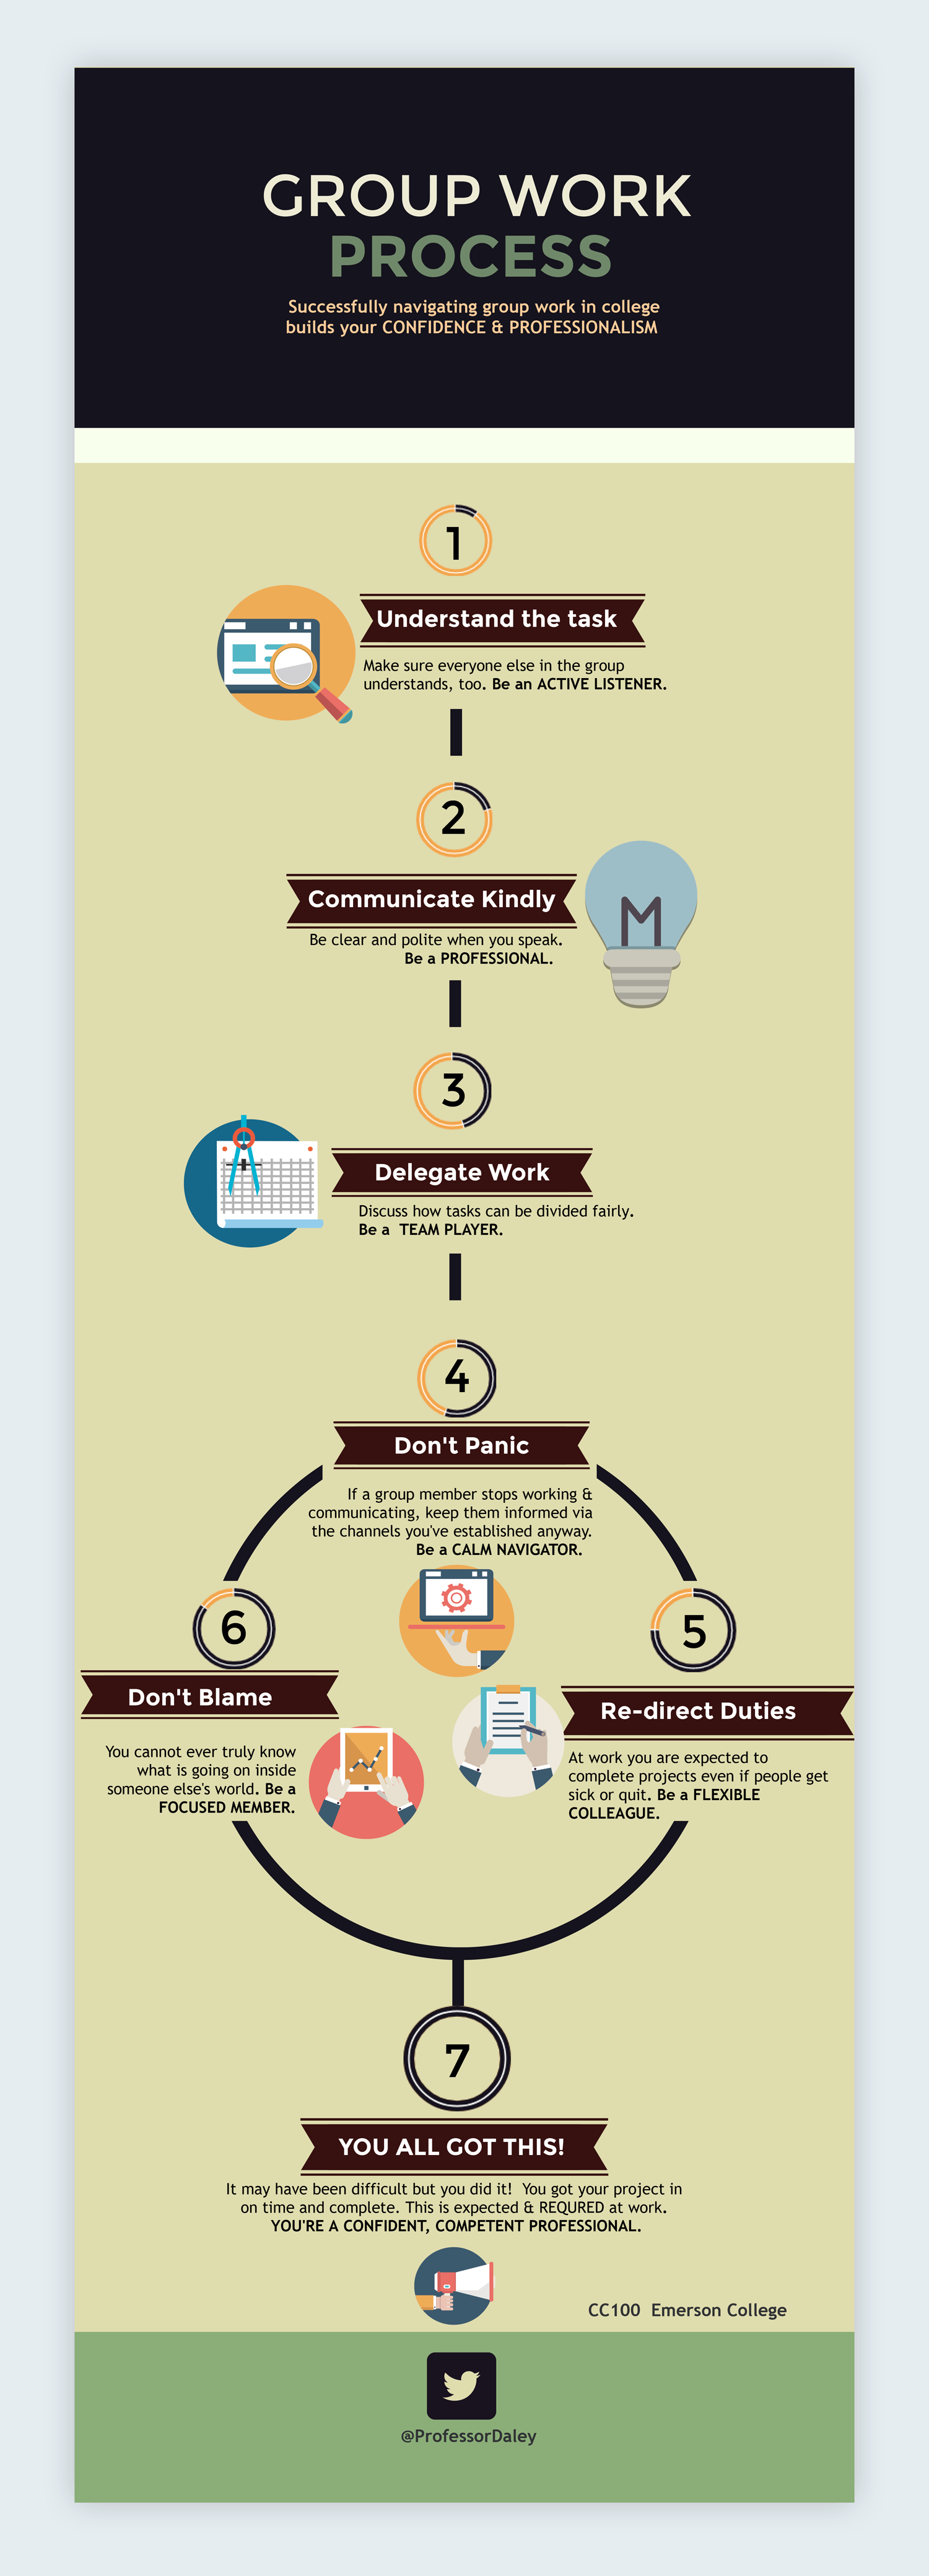 group work process infographic emerson college